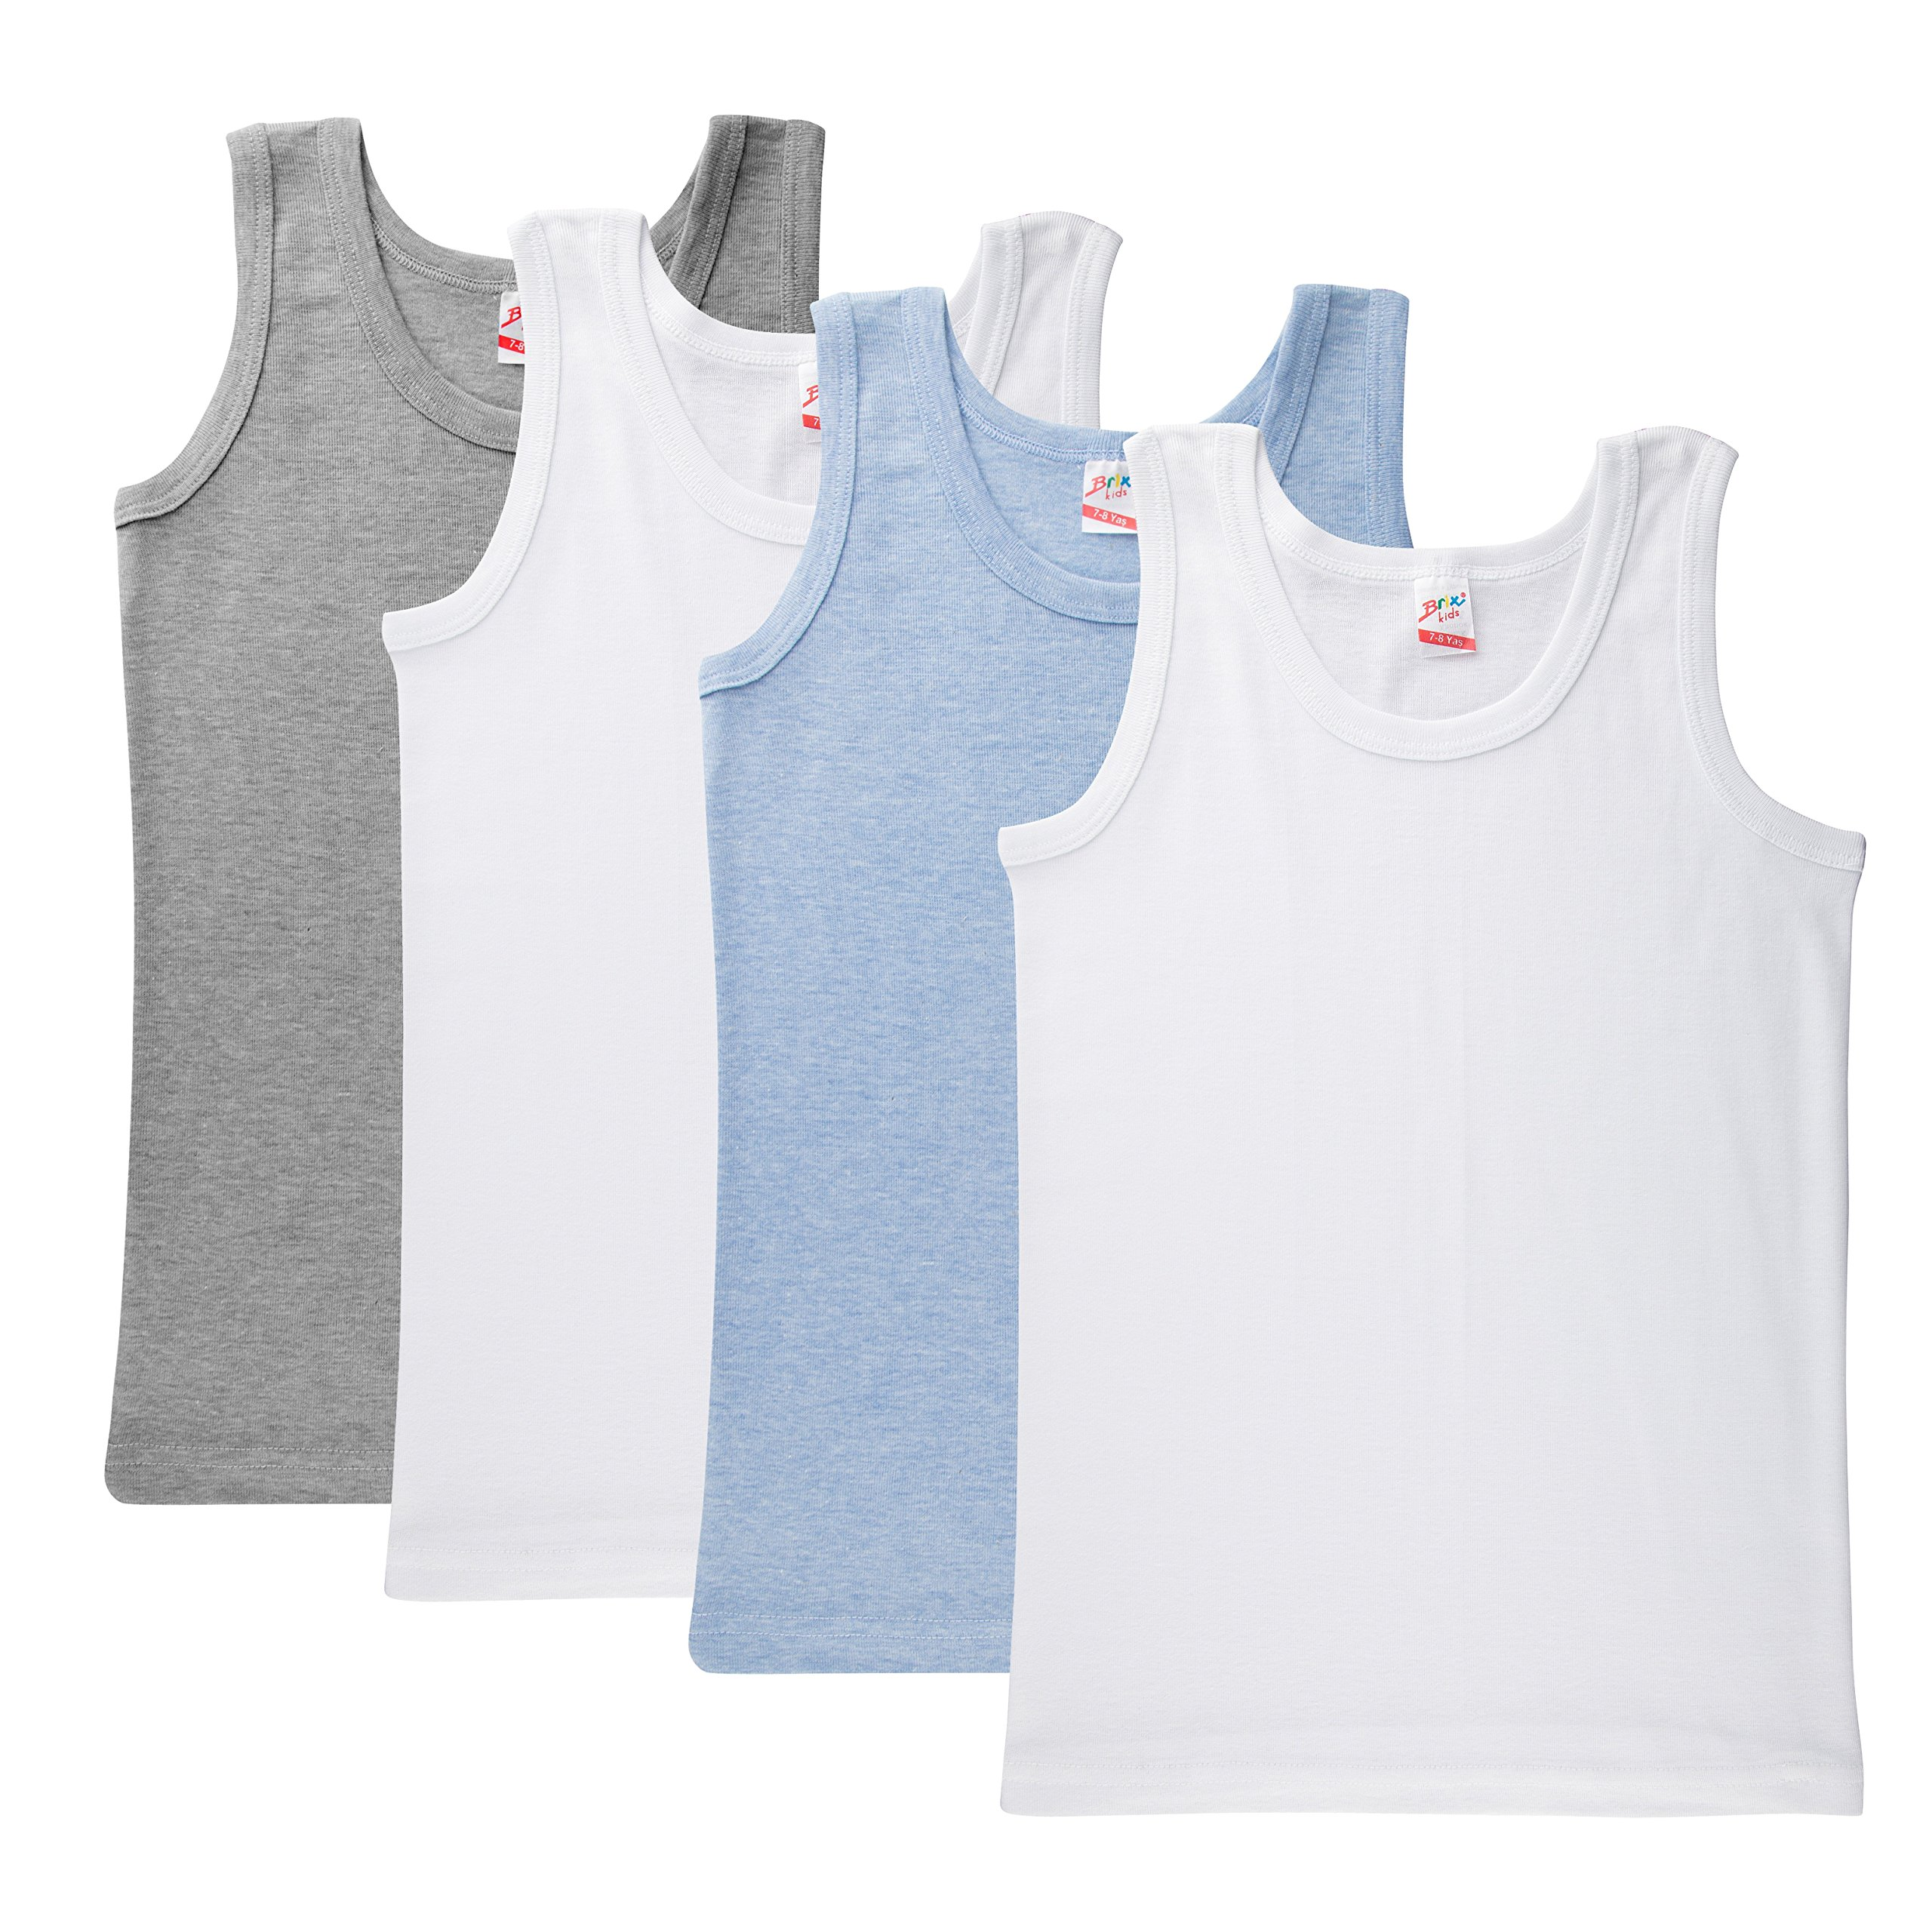 e45651f2358e84 Brix Boys  Cotton Tank Top - Tagless Undershirts Super Soft 4-Pack Tees  Sizes